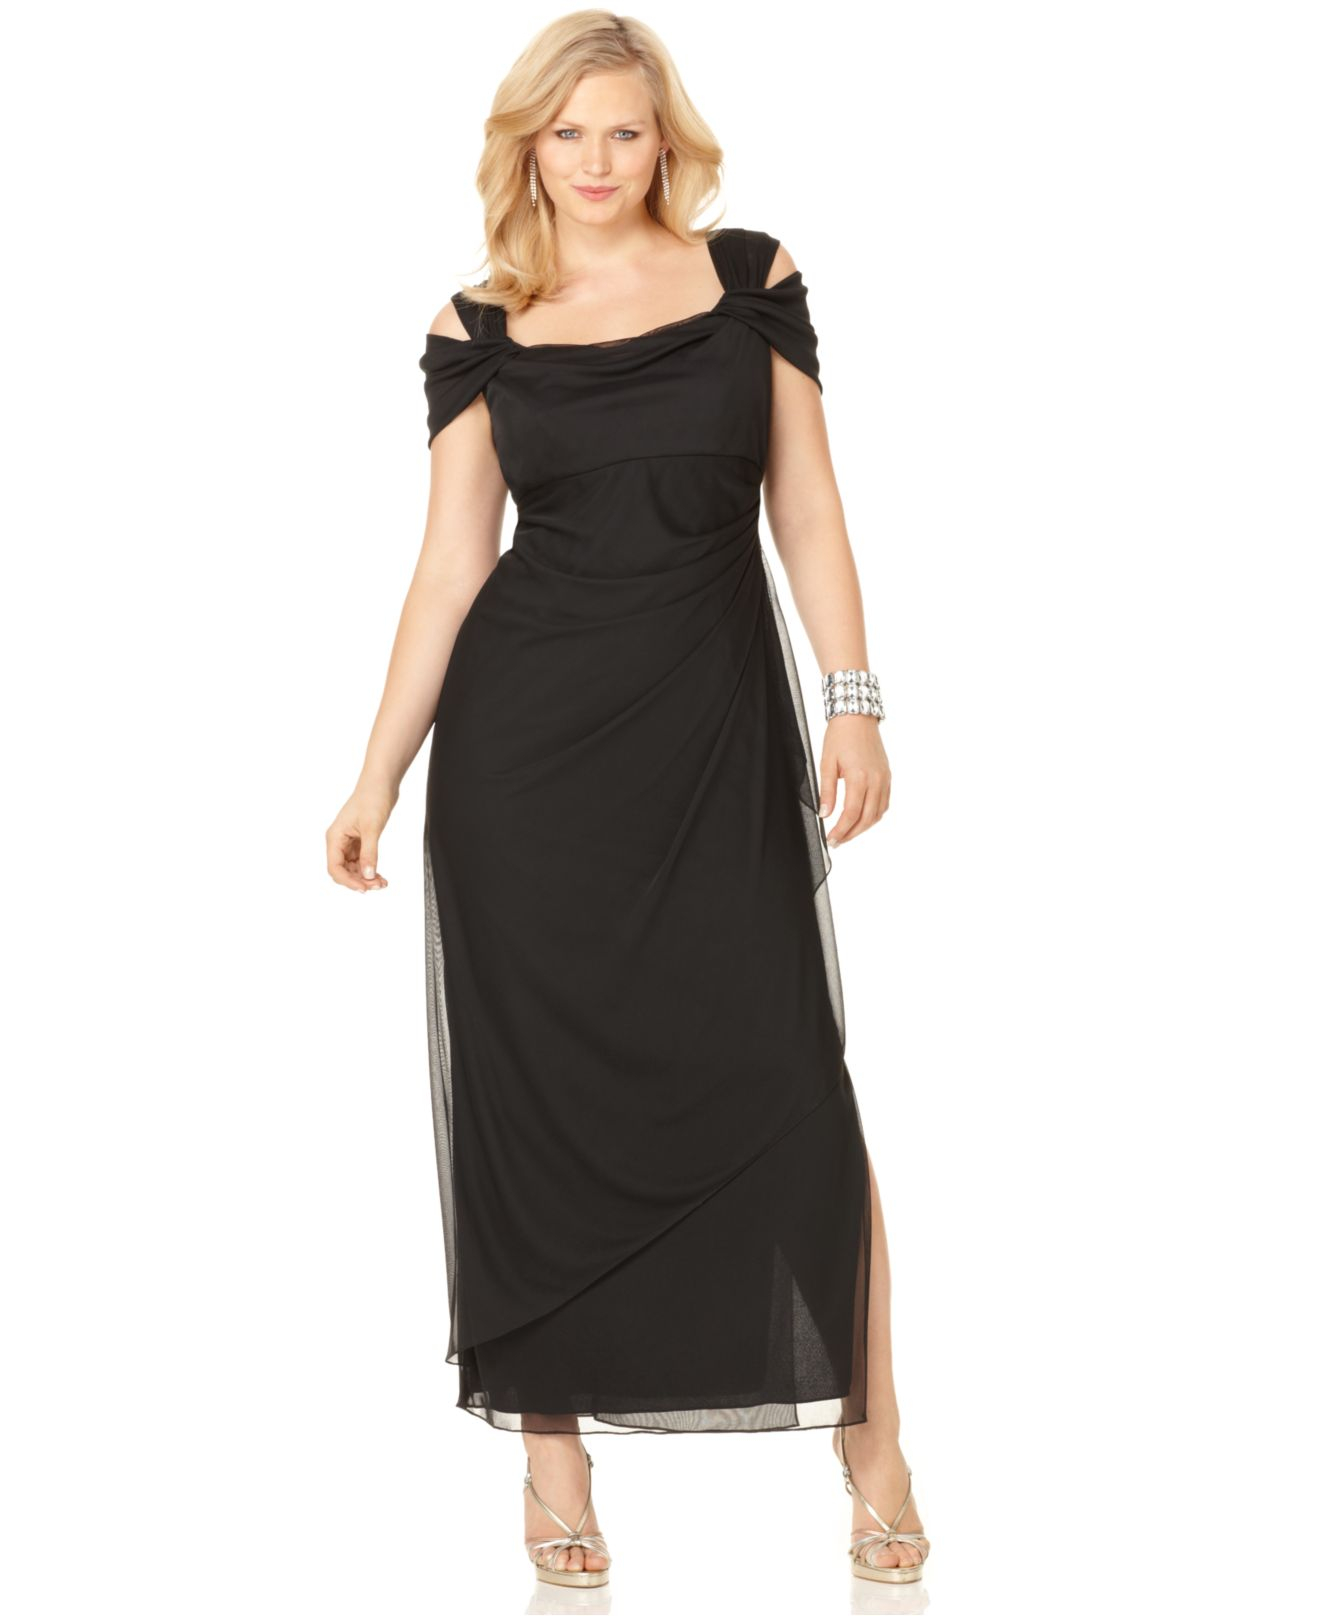 Lyst - Alex evenings Plus Size Cold-Shoulder Empire-Waist Gown in ...